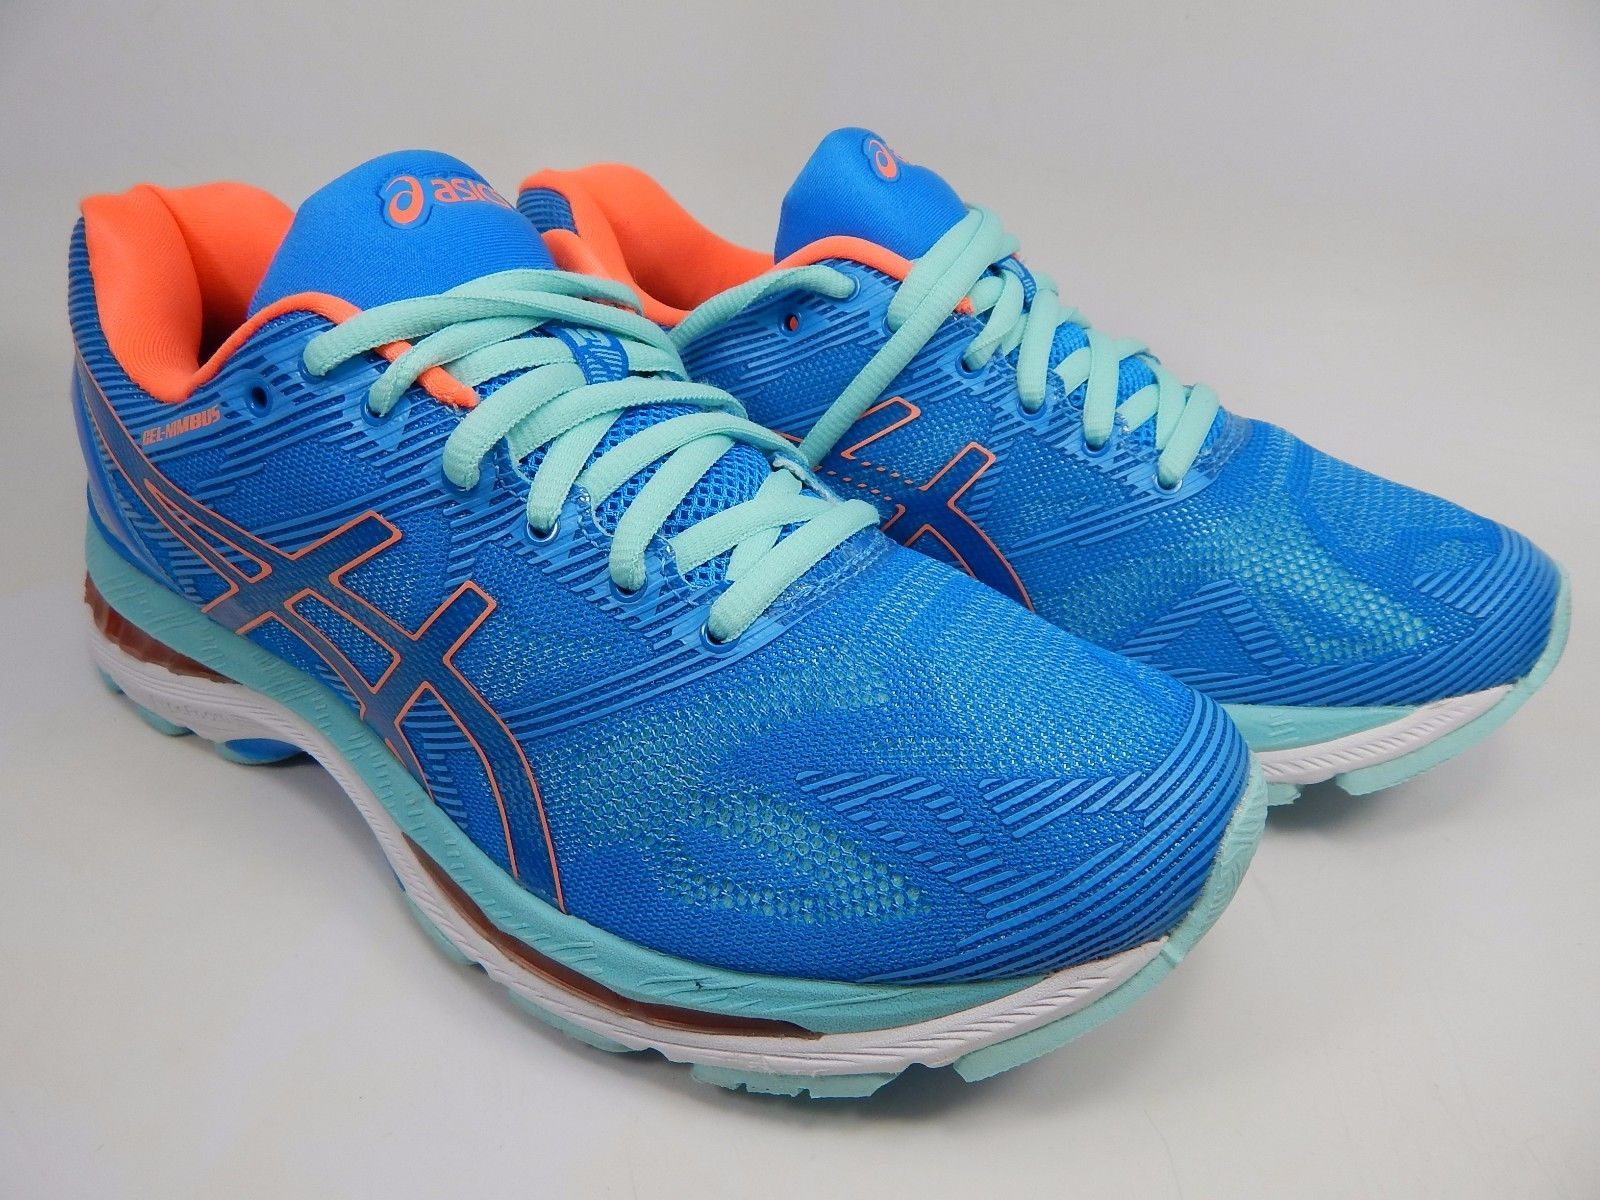 Asics Gel Nimbus 19 Women's Running Shoes Size US 7.5 M (B) EU 39 Blue T750N